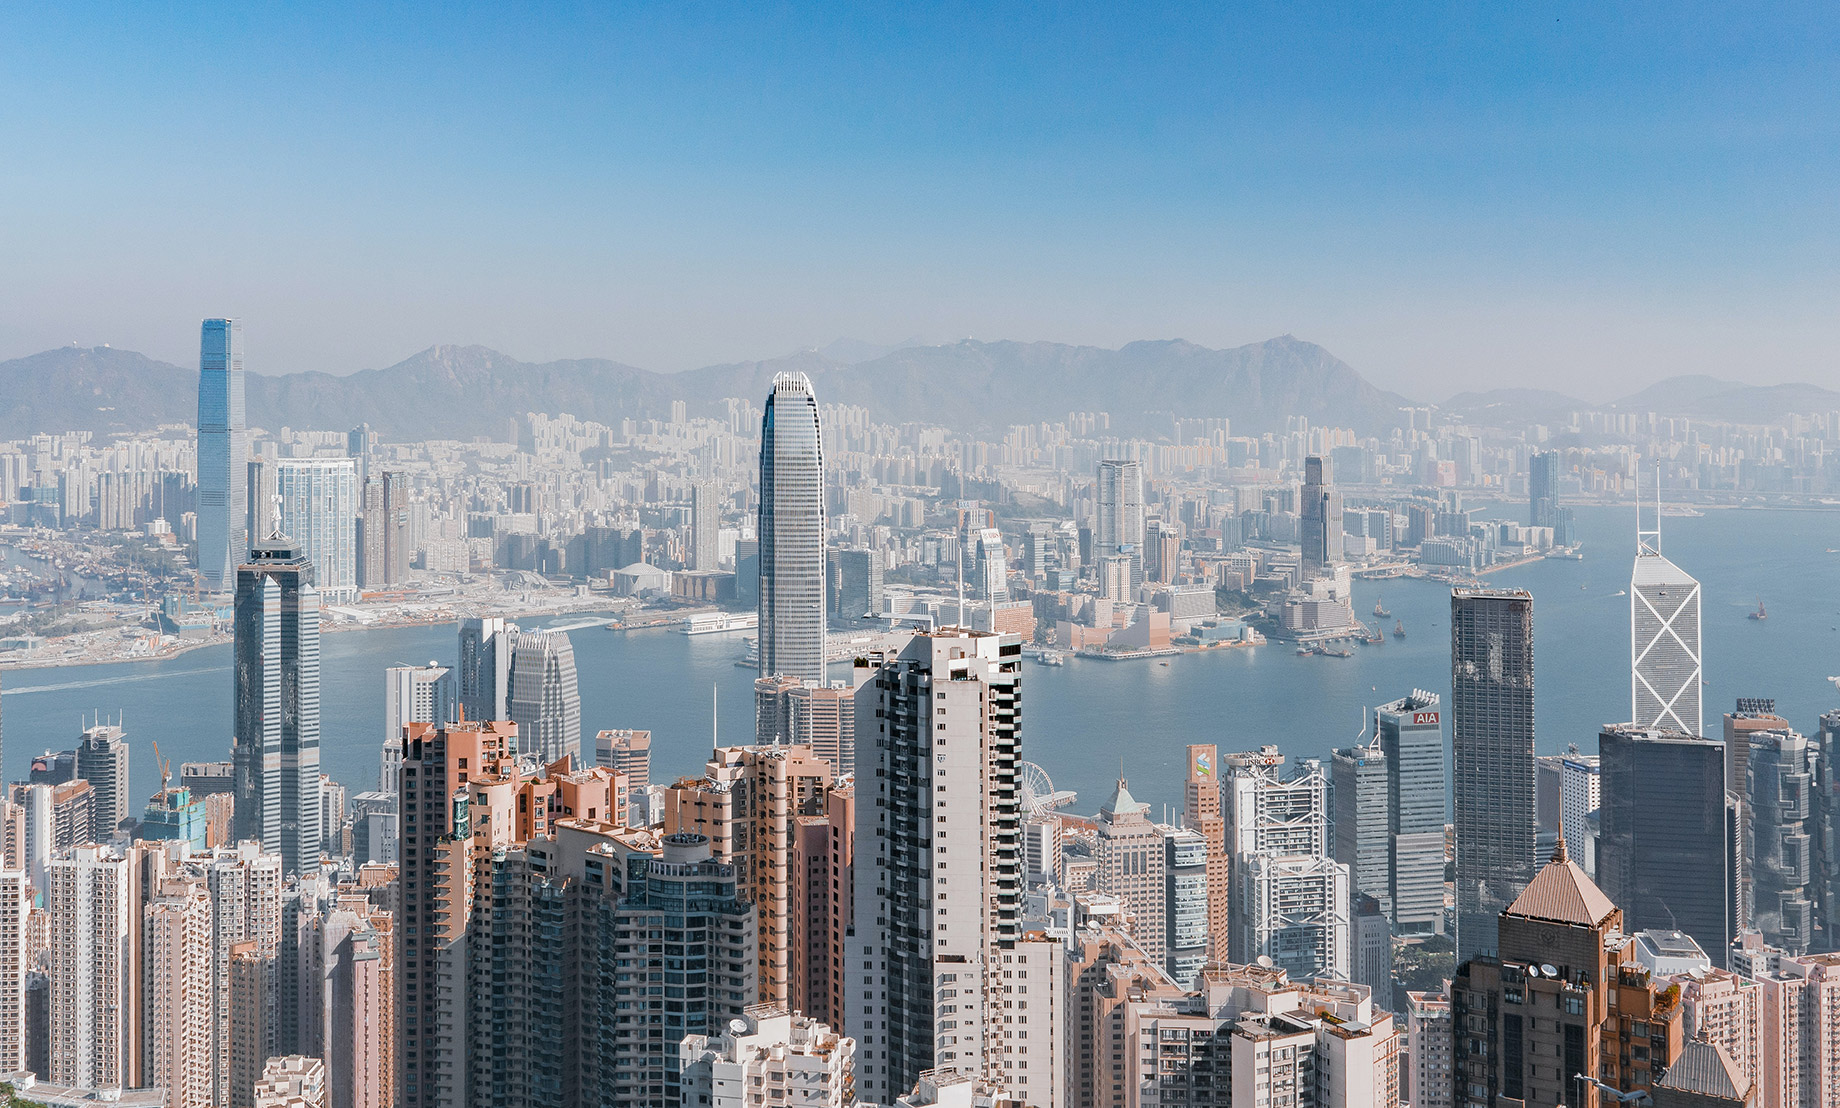 Hong Kong, China - The Most Expensive Real Estate Cities in the World